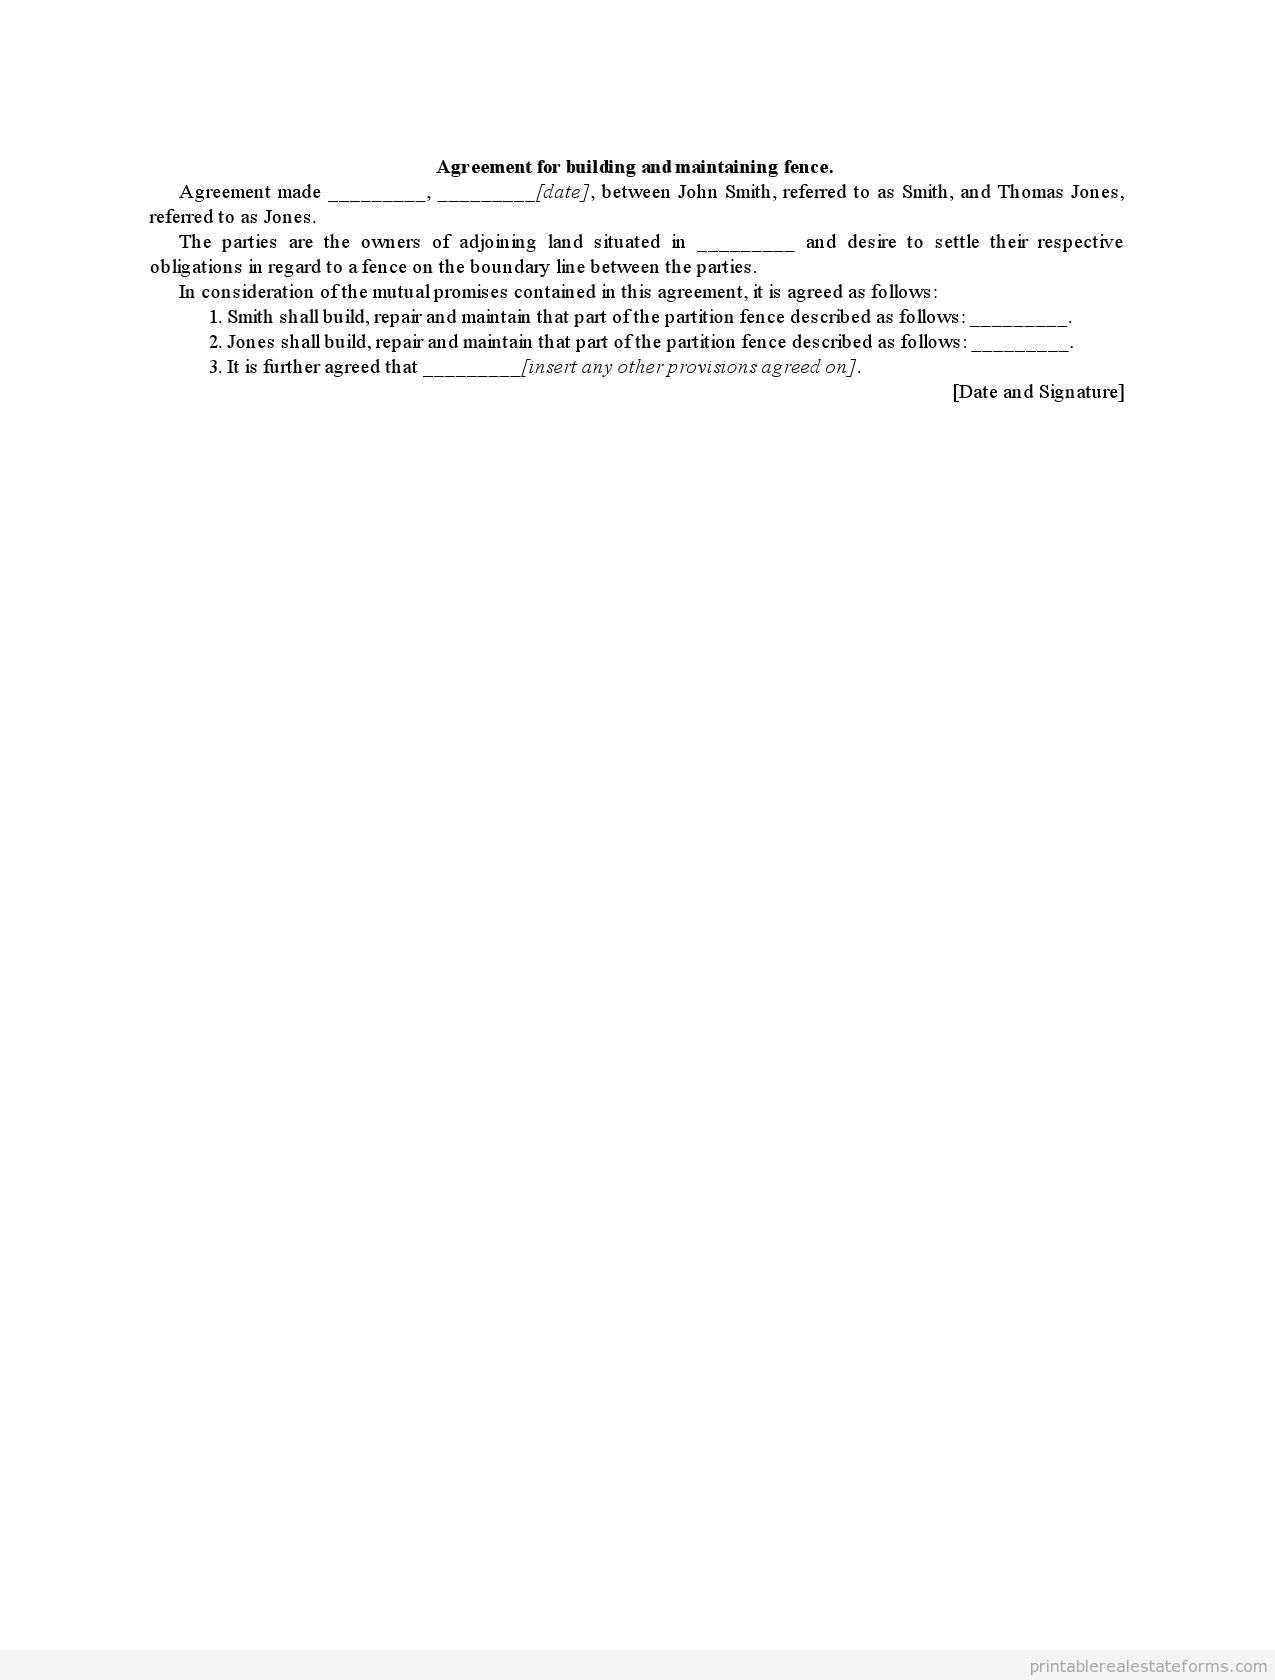 Sample Printable Agreement For Building And Maintaining Fence Form